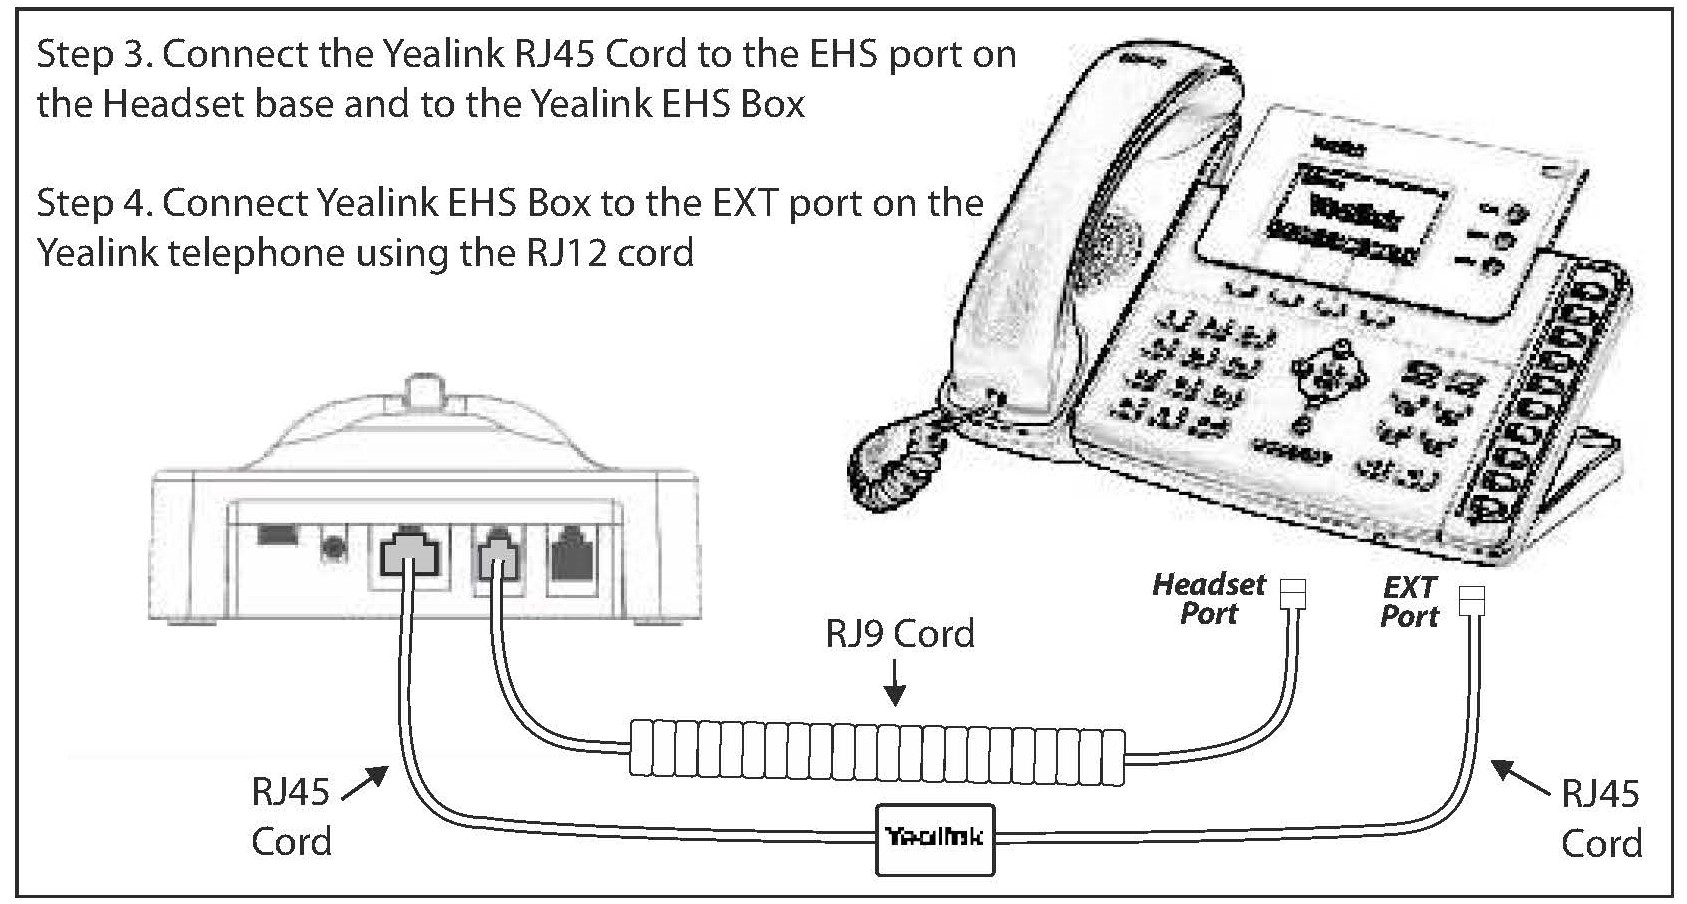 Yealink ehs guide - IPN Headsets